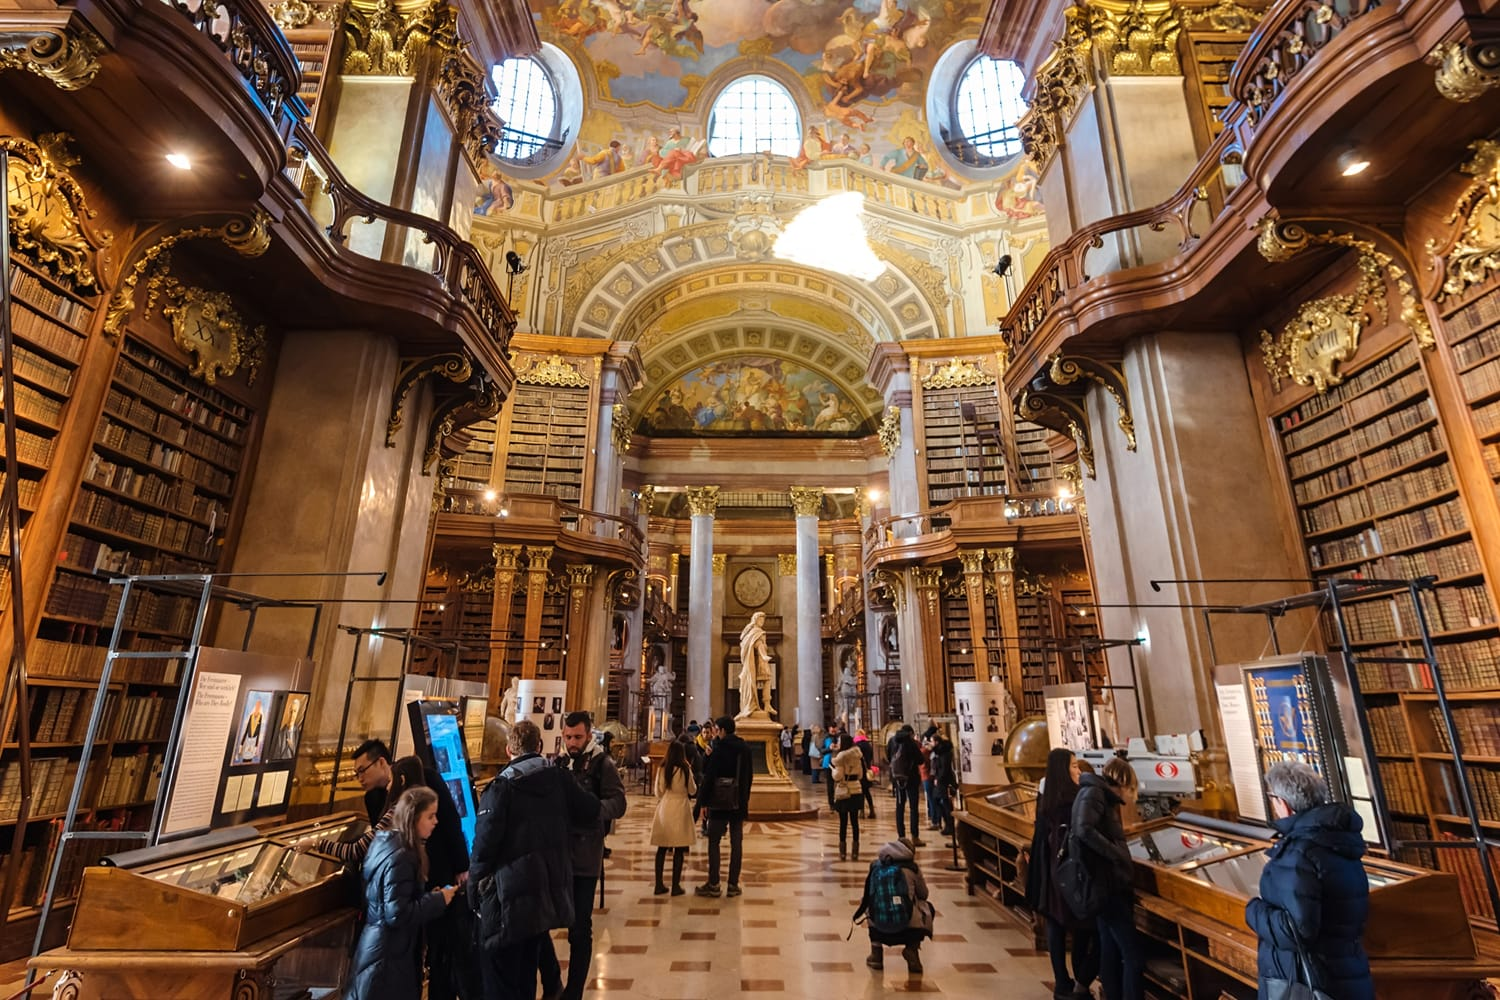 Interior of Austrian National Library - old baroque library of Hapsburg empire located in Hofburg Palace in Vienna, Austria